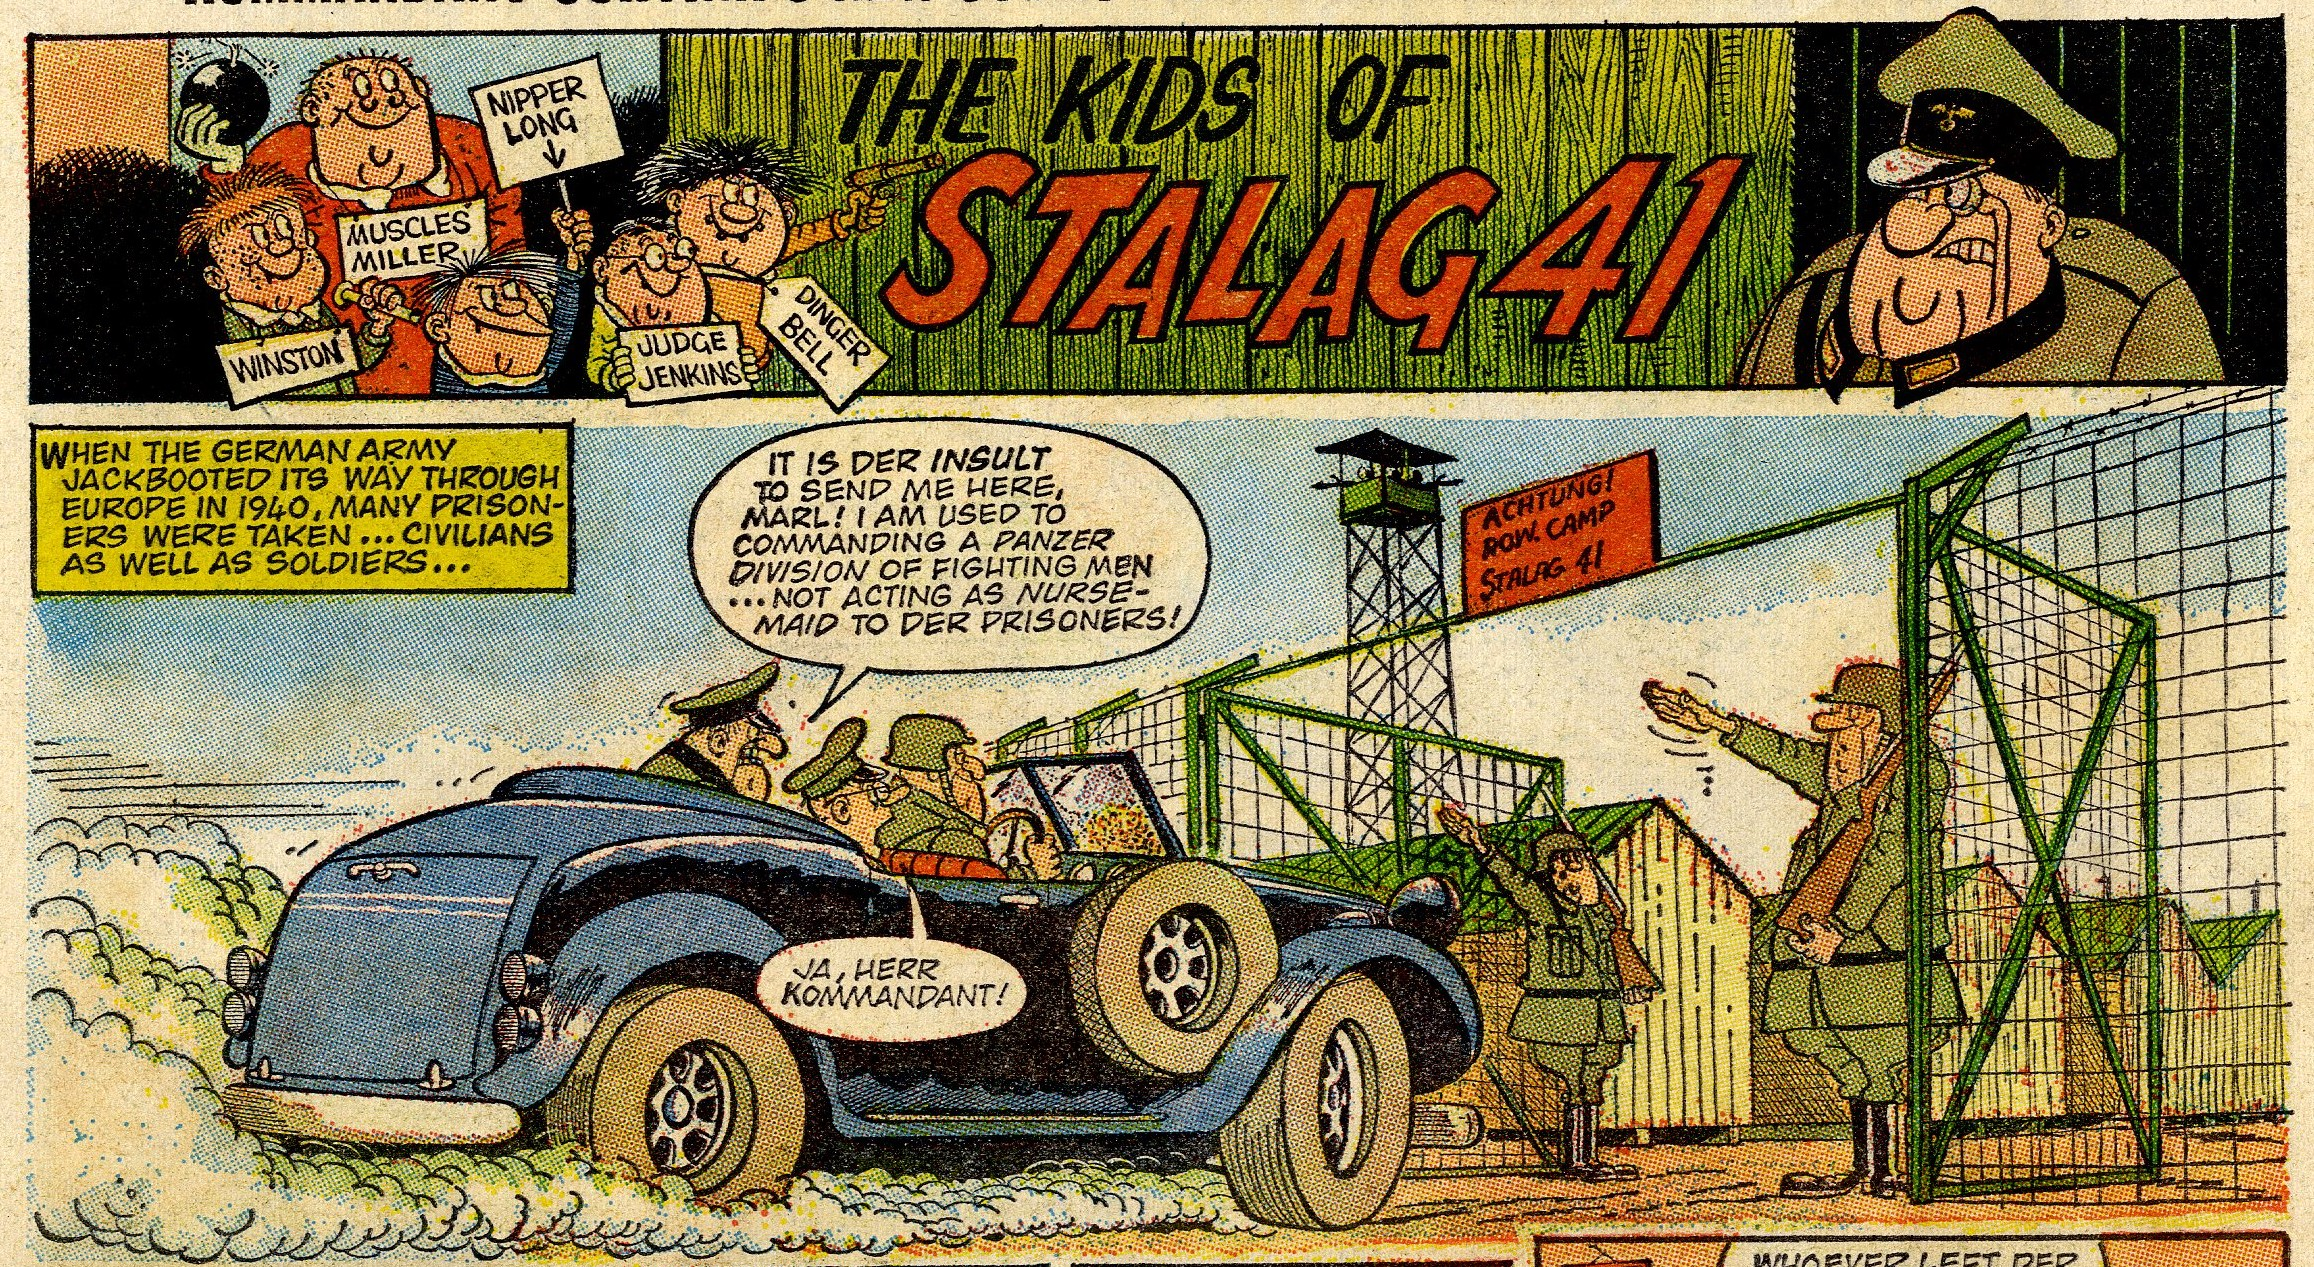 The Kids of Stalag 41: Mike Lacey (artist)